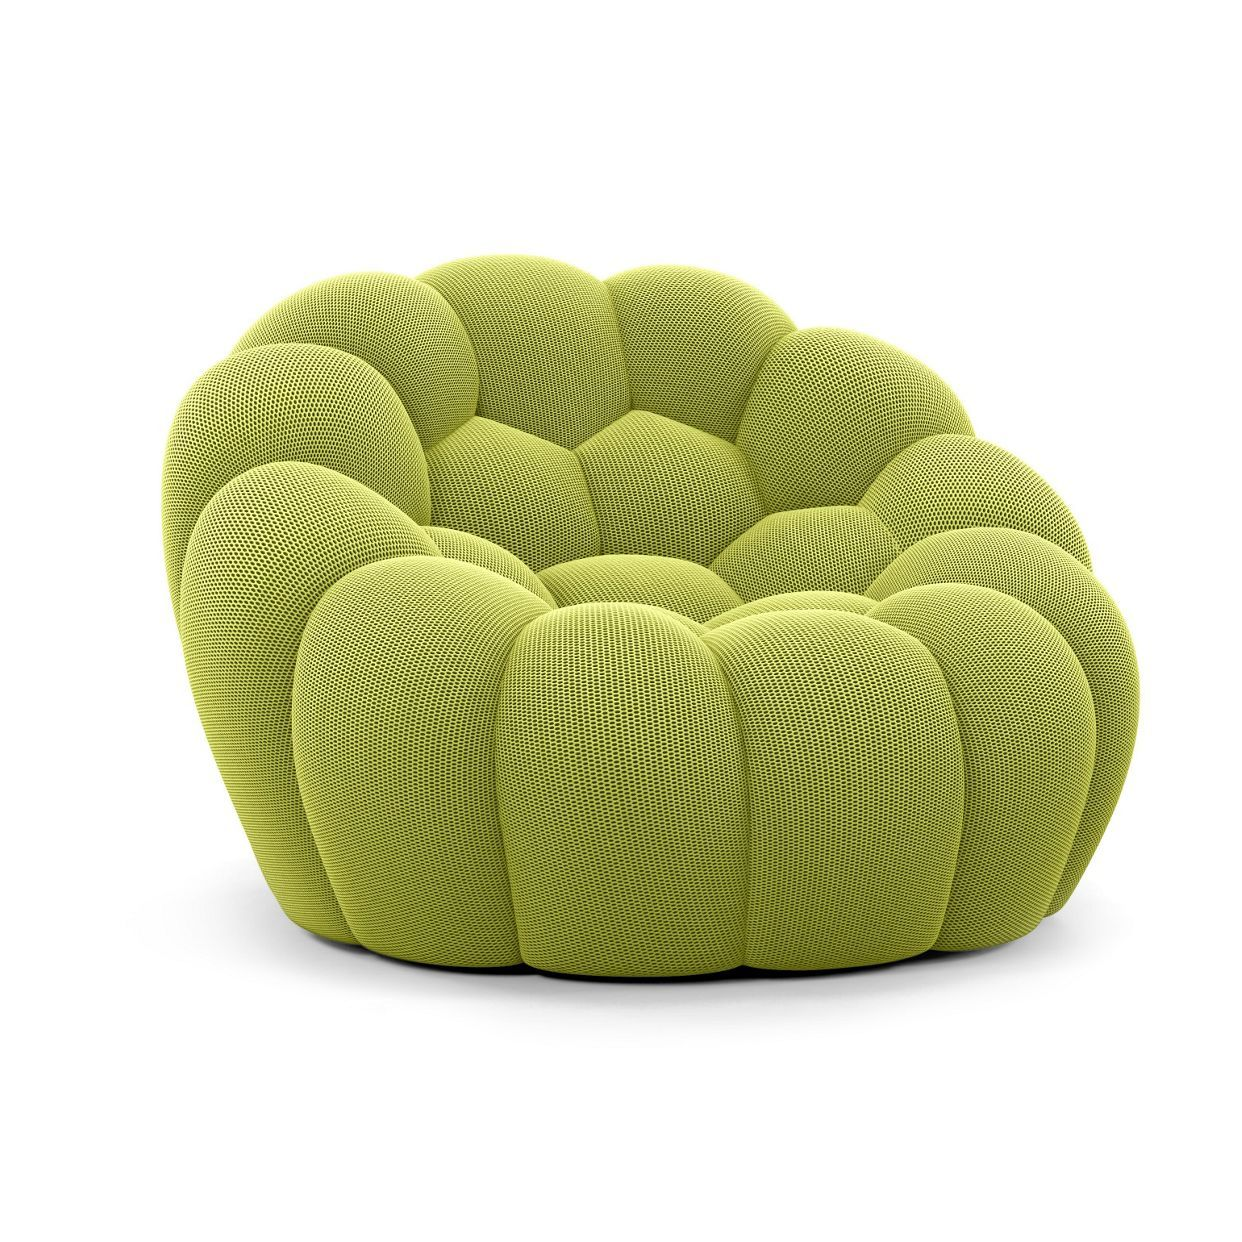 Discover Our Product BUBBLE ARMCHAIR, As Well As Other Products From The  Family